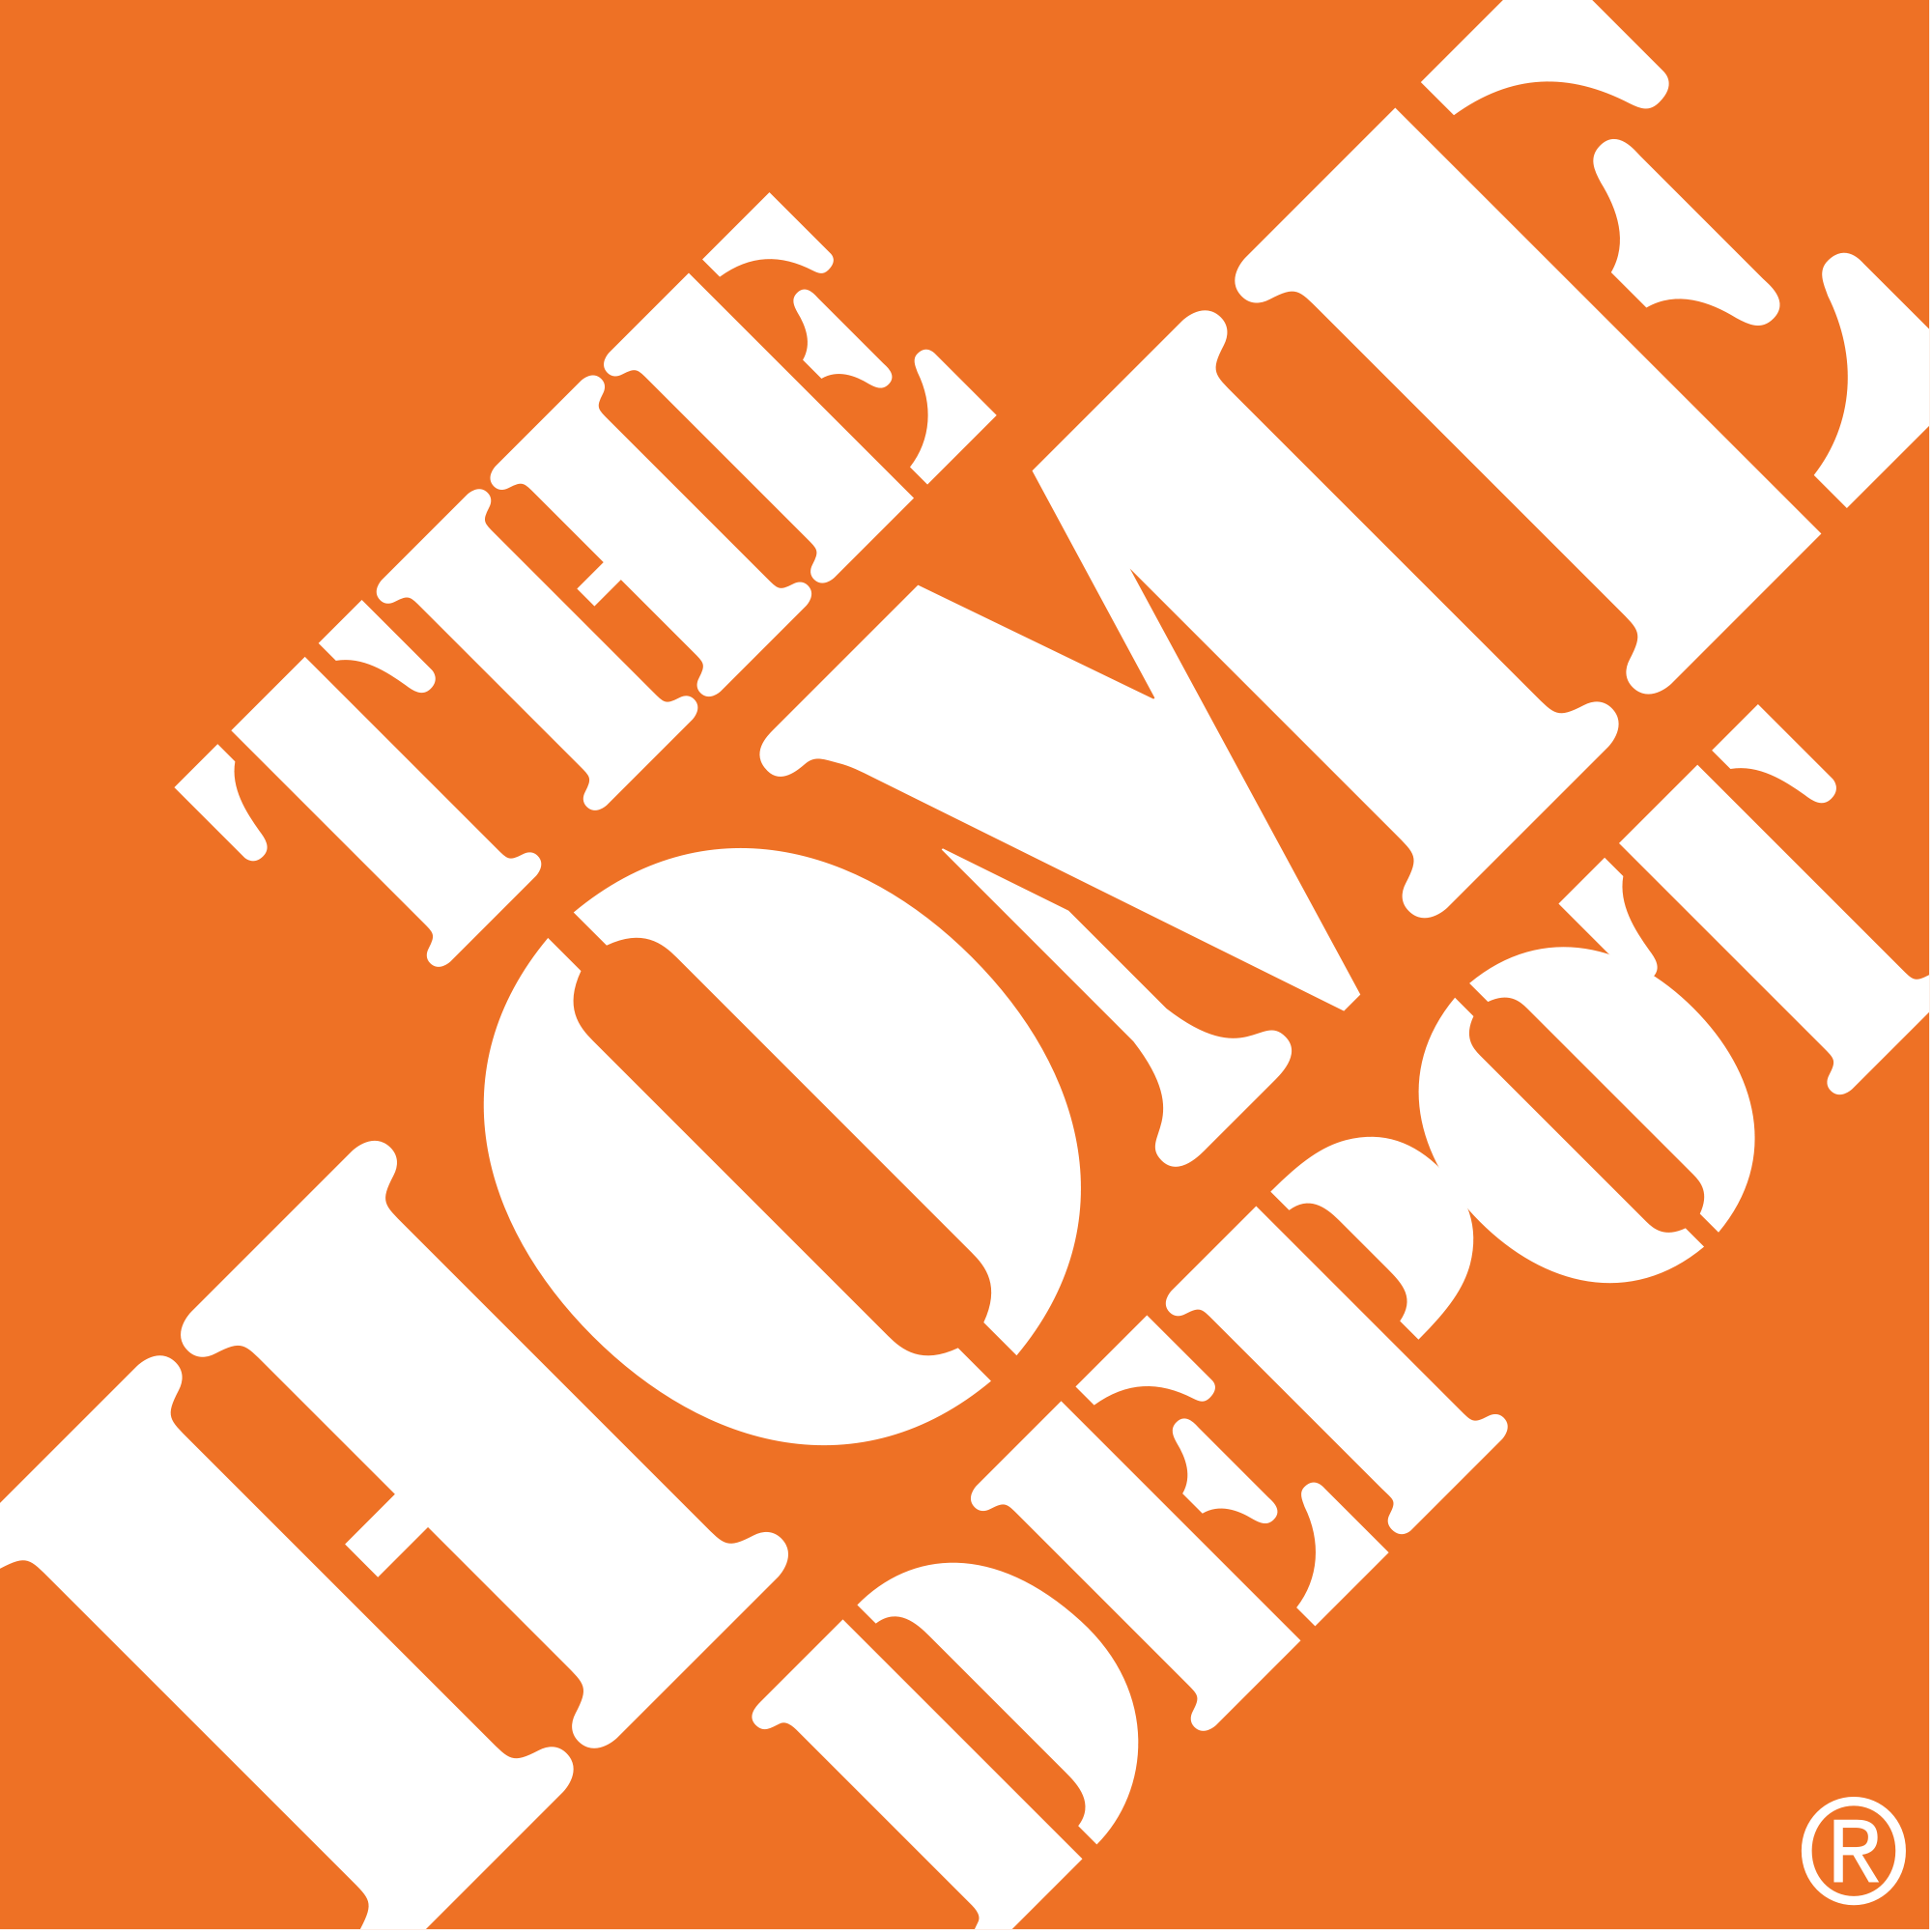 homedepot.png